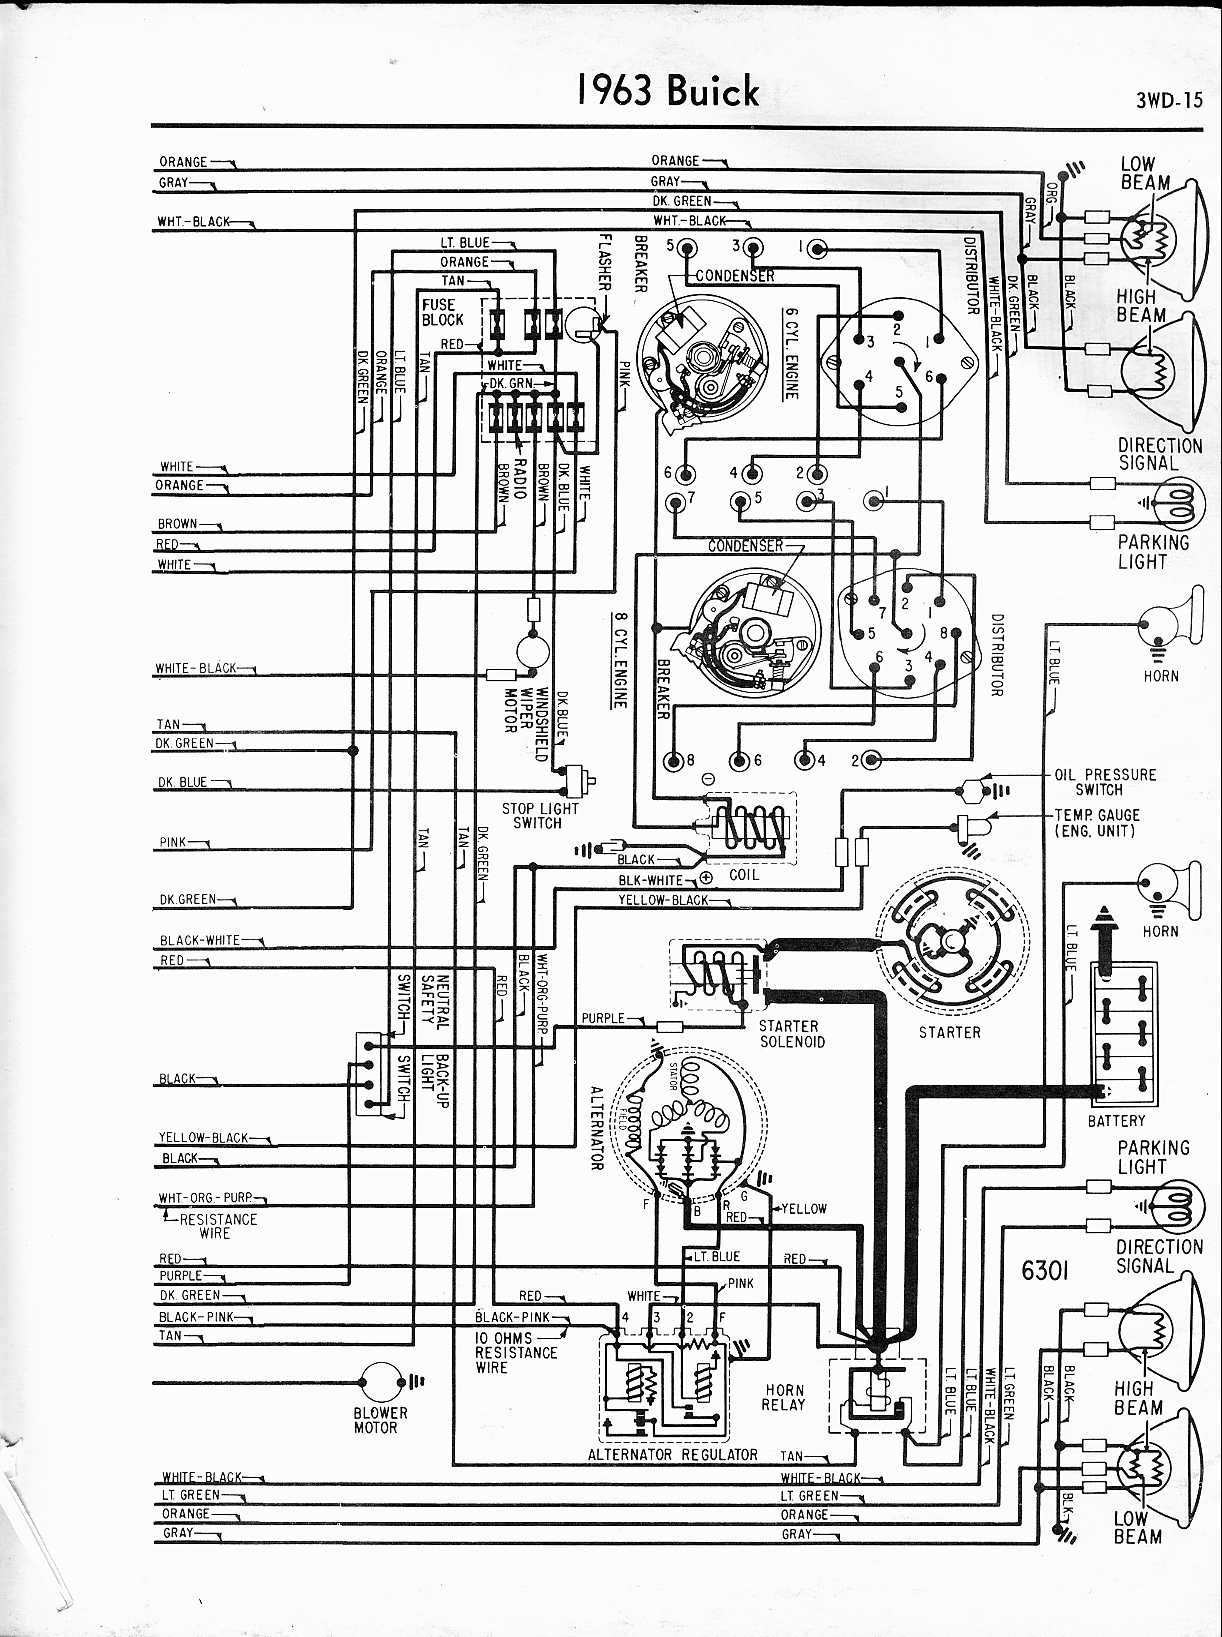 1968 Buick Wiring Diagram Manual Guide Harness For 49 Ford F1 Free Download Schematic Skylark Library Rh 56 Codingcommunity De 1969 Diagrams Century